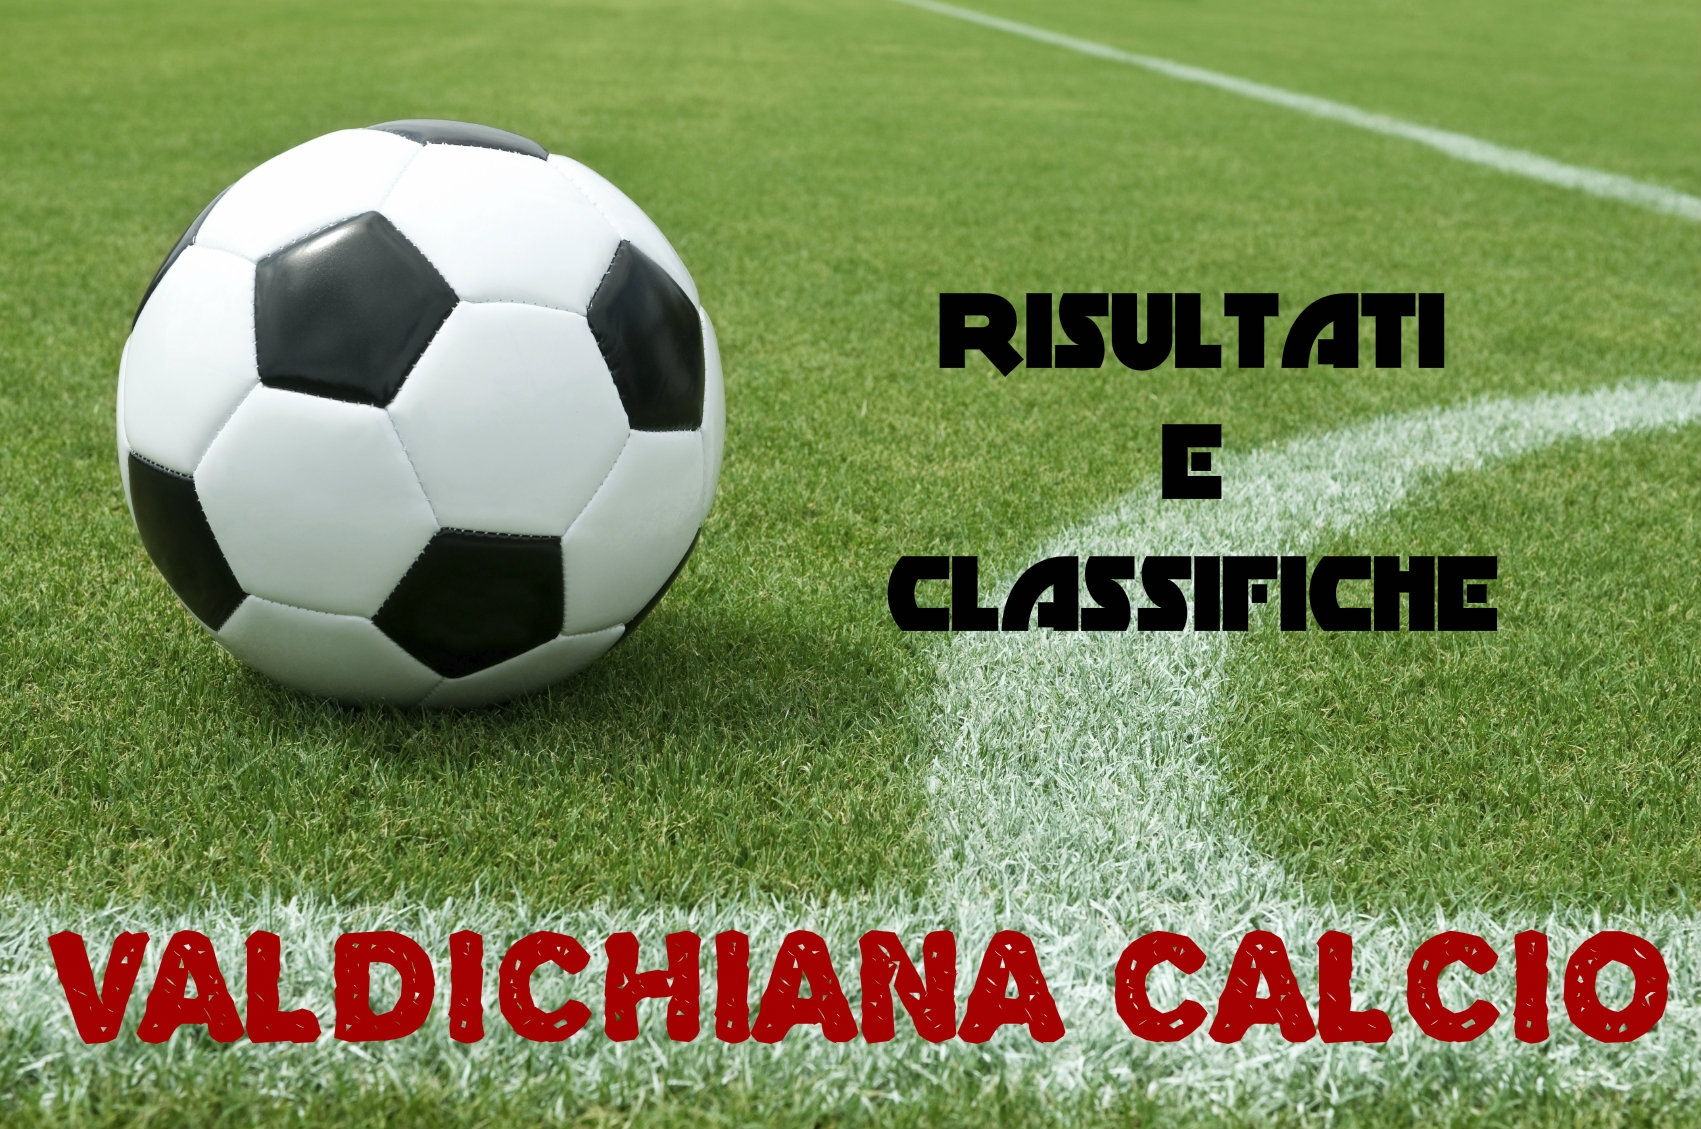 Calcio dilettanti: risultati e classifiche